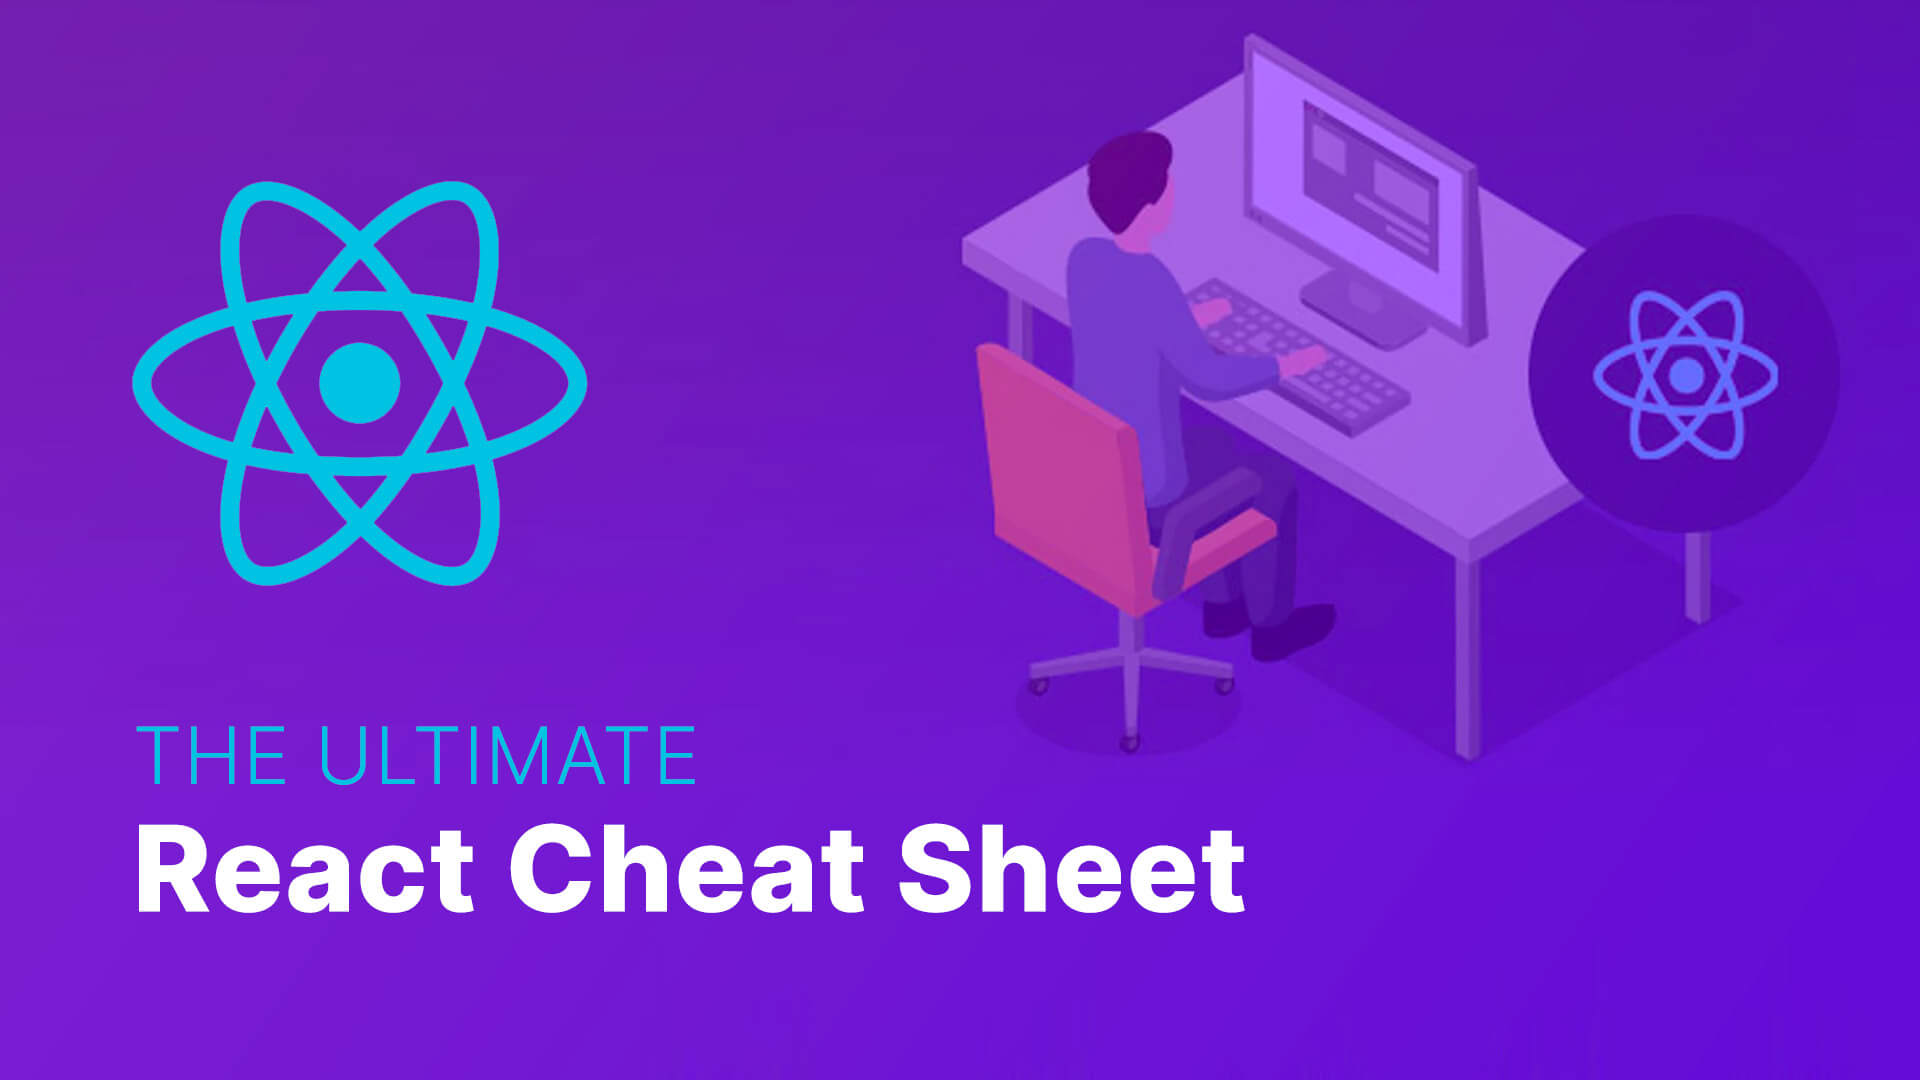 The Ultimate React Cheat Sheet